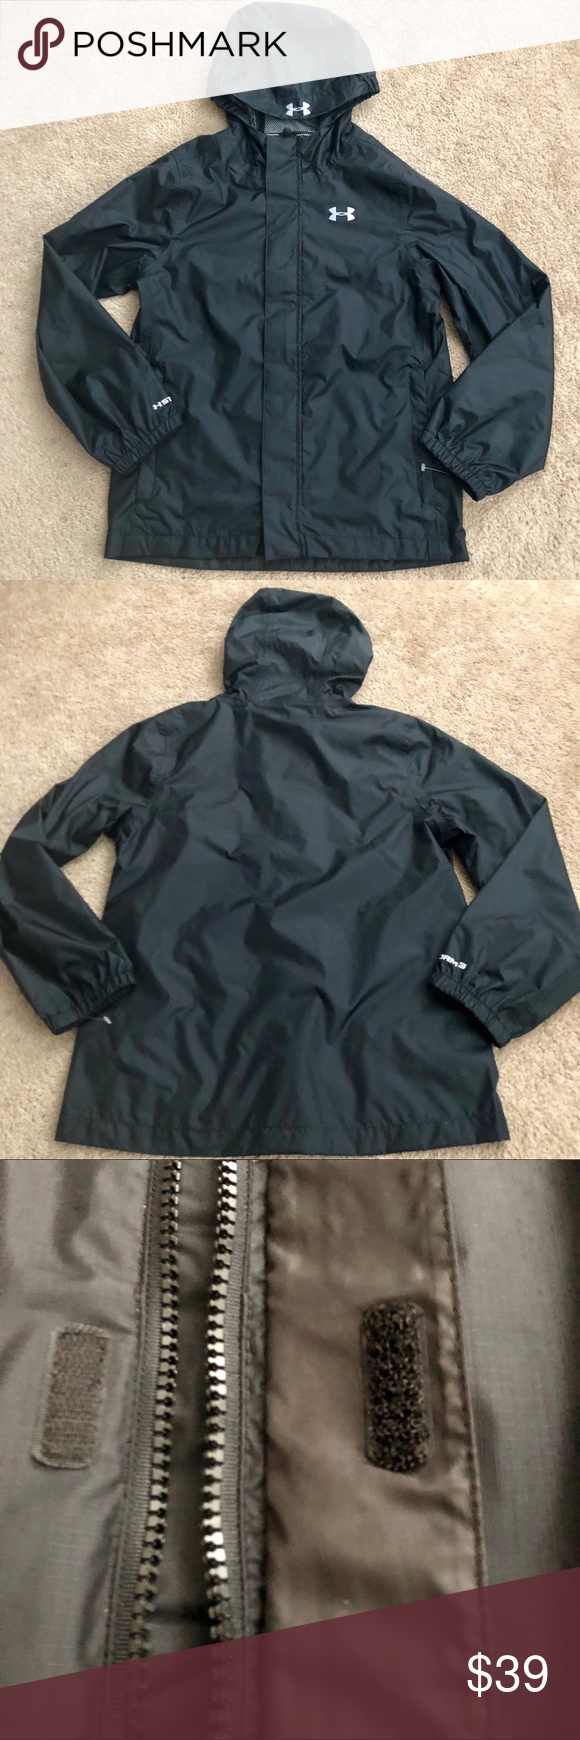 618c8b333 Youth Under Armour Rain Jacket in 2018